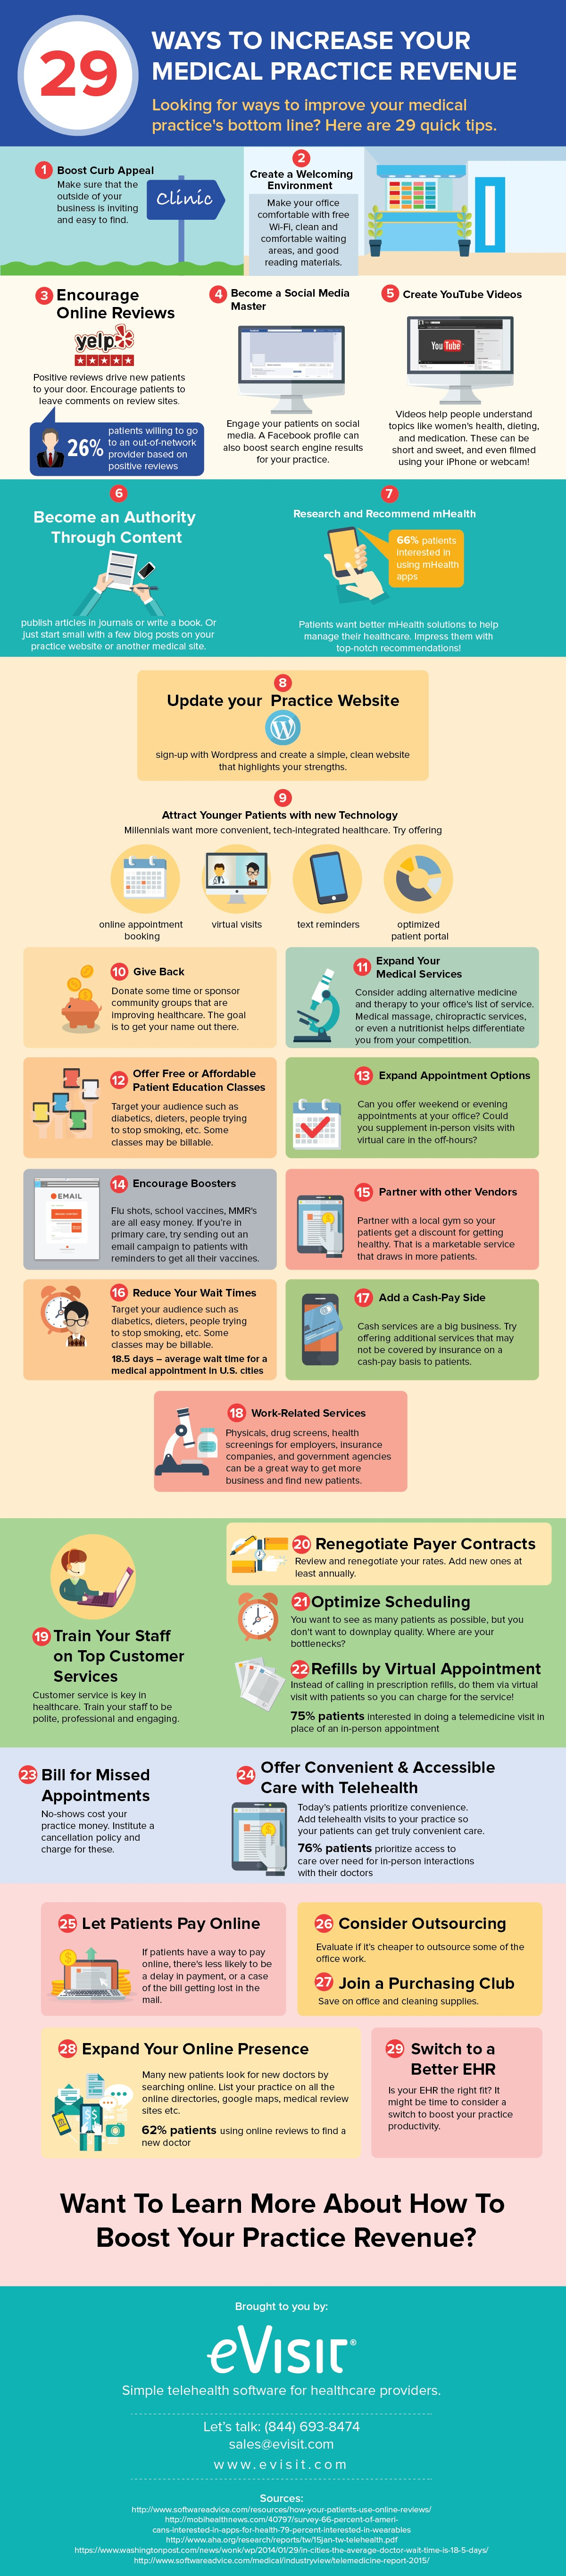 29 ways to boost practice revenue infographic